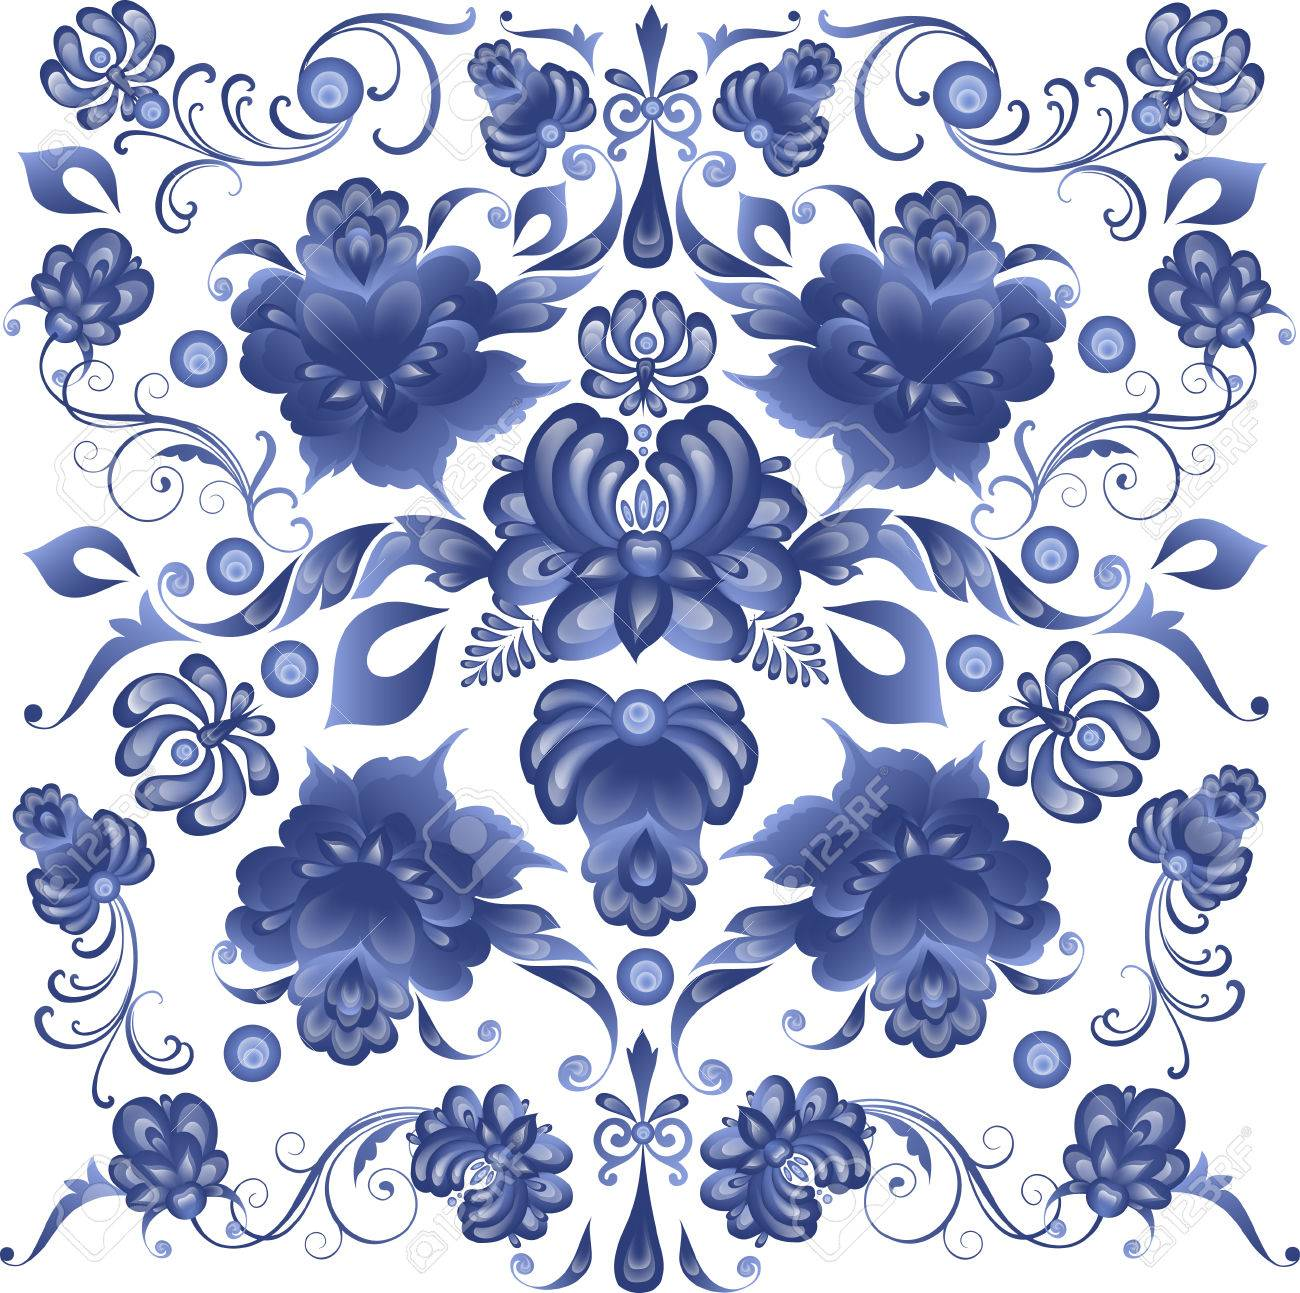 Floral Background in Gzhel Style - in vector - 49796090